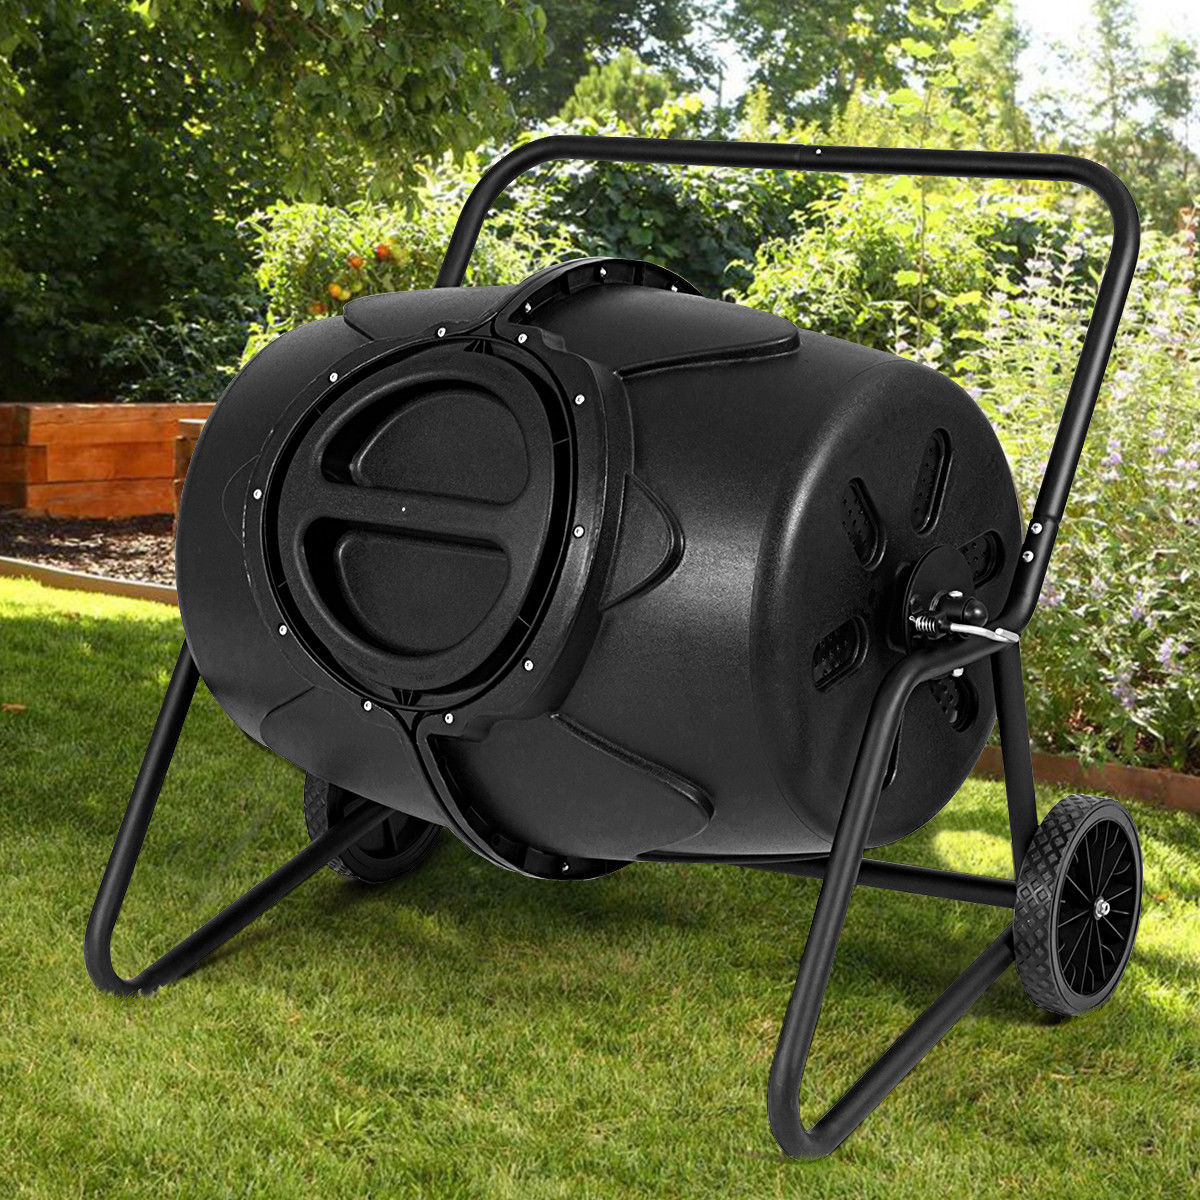 Costway 50 Gallon Wheeled Compost Tumbler Garden Waste Bin Grass Trash Barrel Fertilizer by Costway